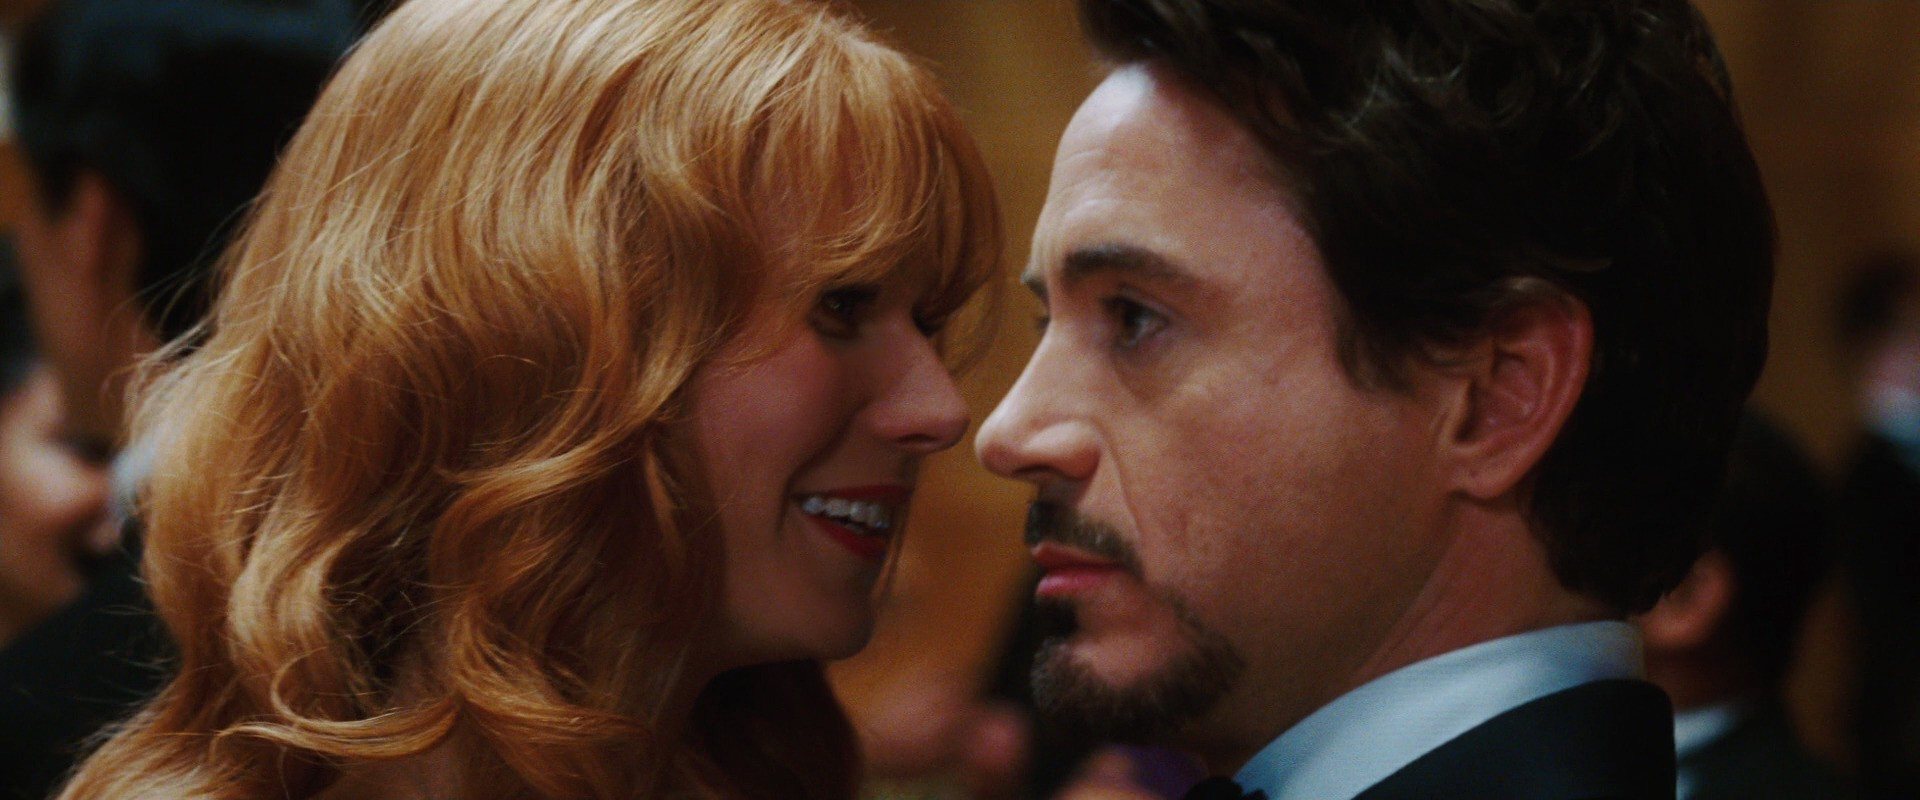 http://caps.pictures/200/8-iron-man1/full/iron-man1-movie-screencaps.com-8328.jpg